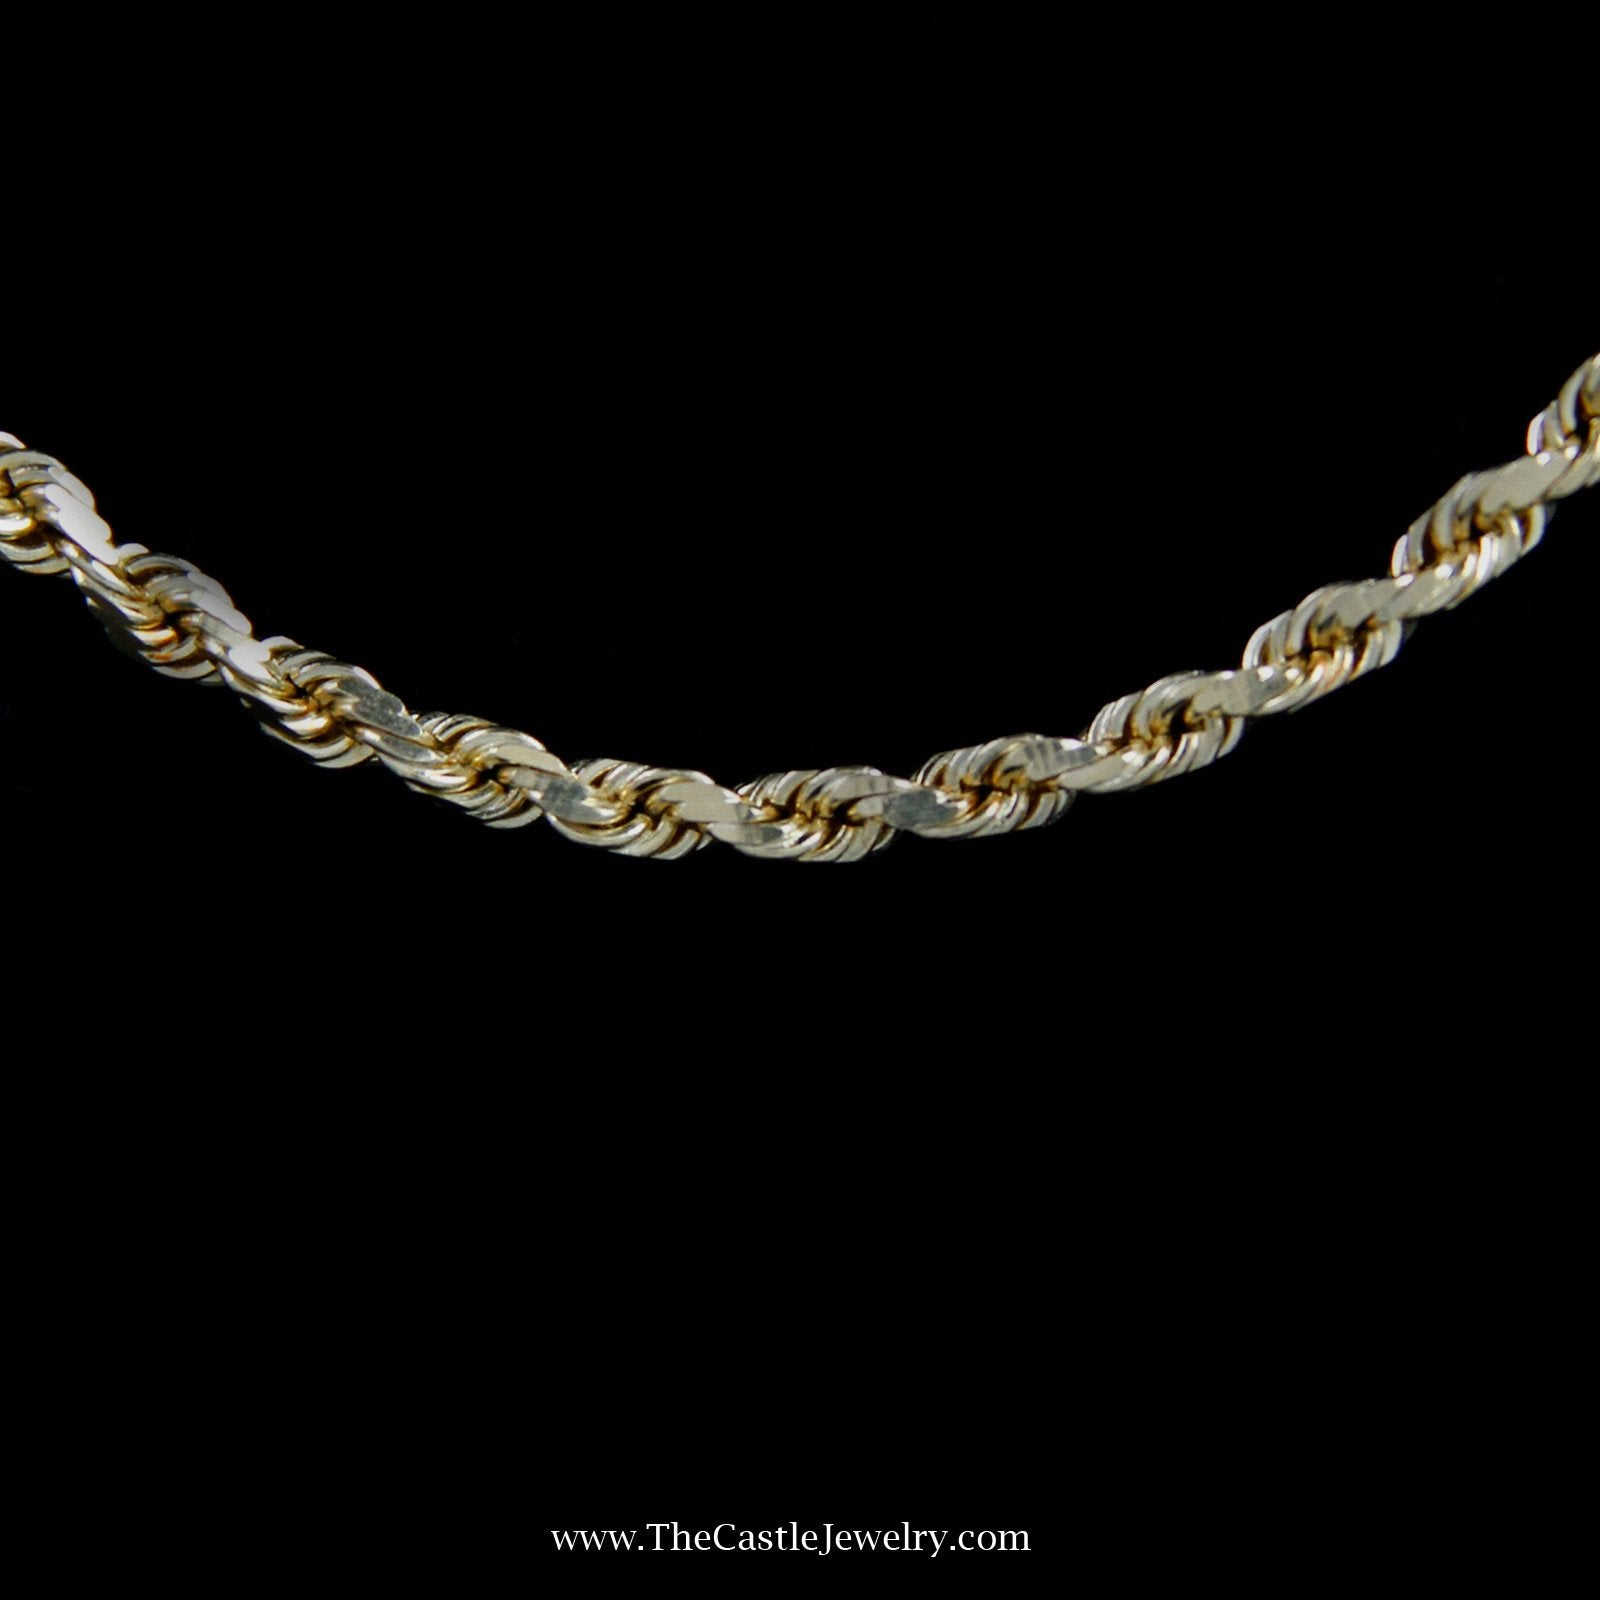 Diamond Cut 20″ Rope Chain w/ Lobster Clasp in Yellow Gold-1